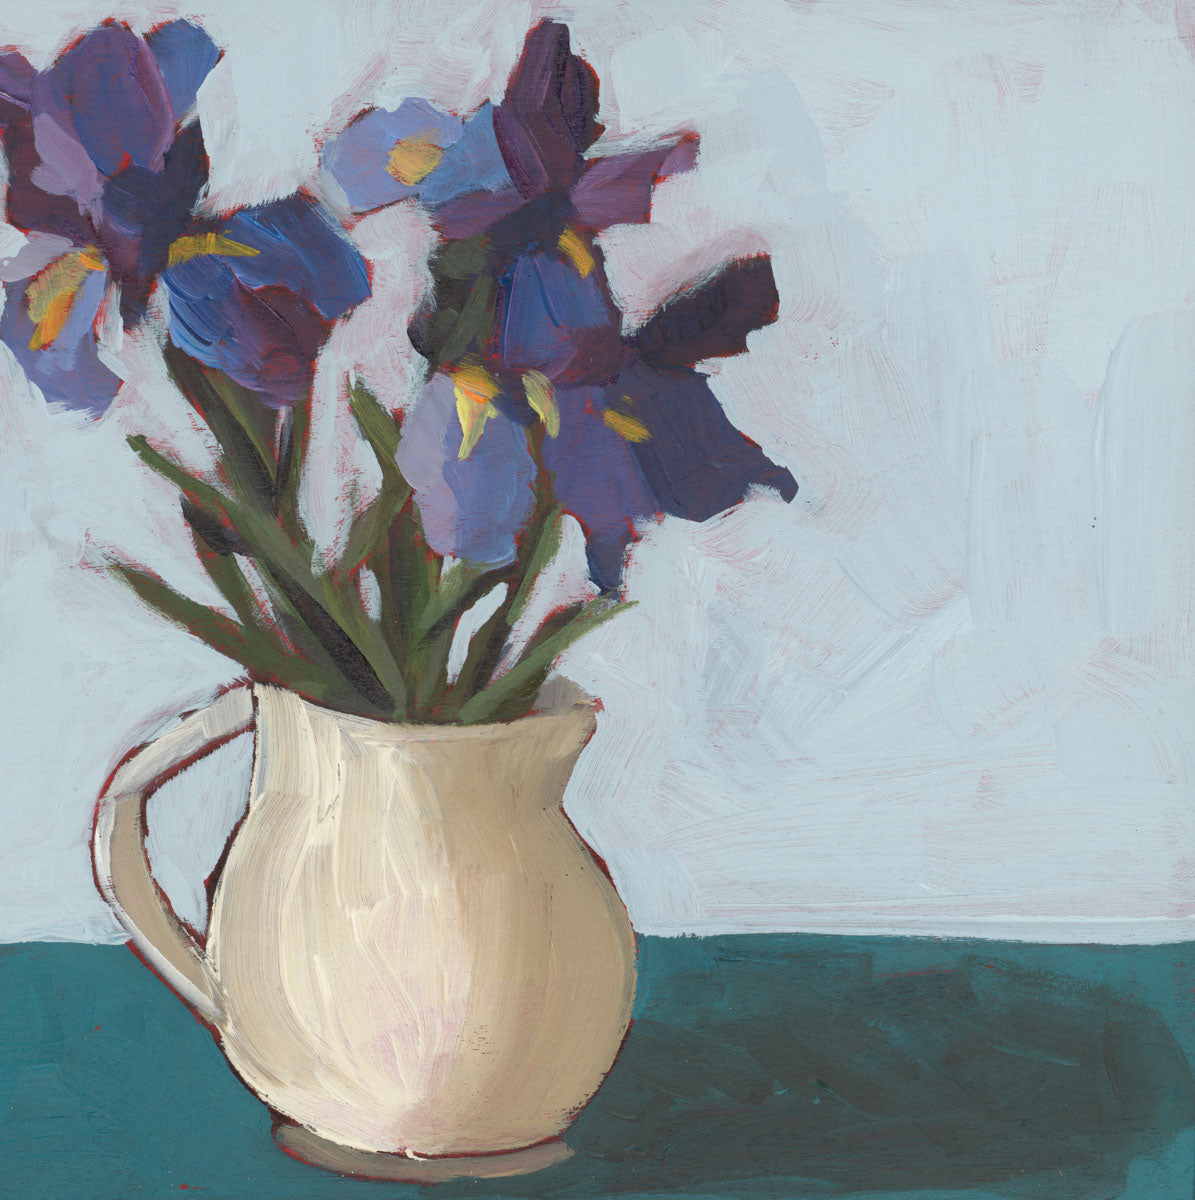 1232: Jug of Irises